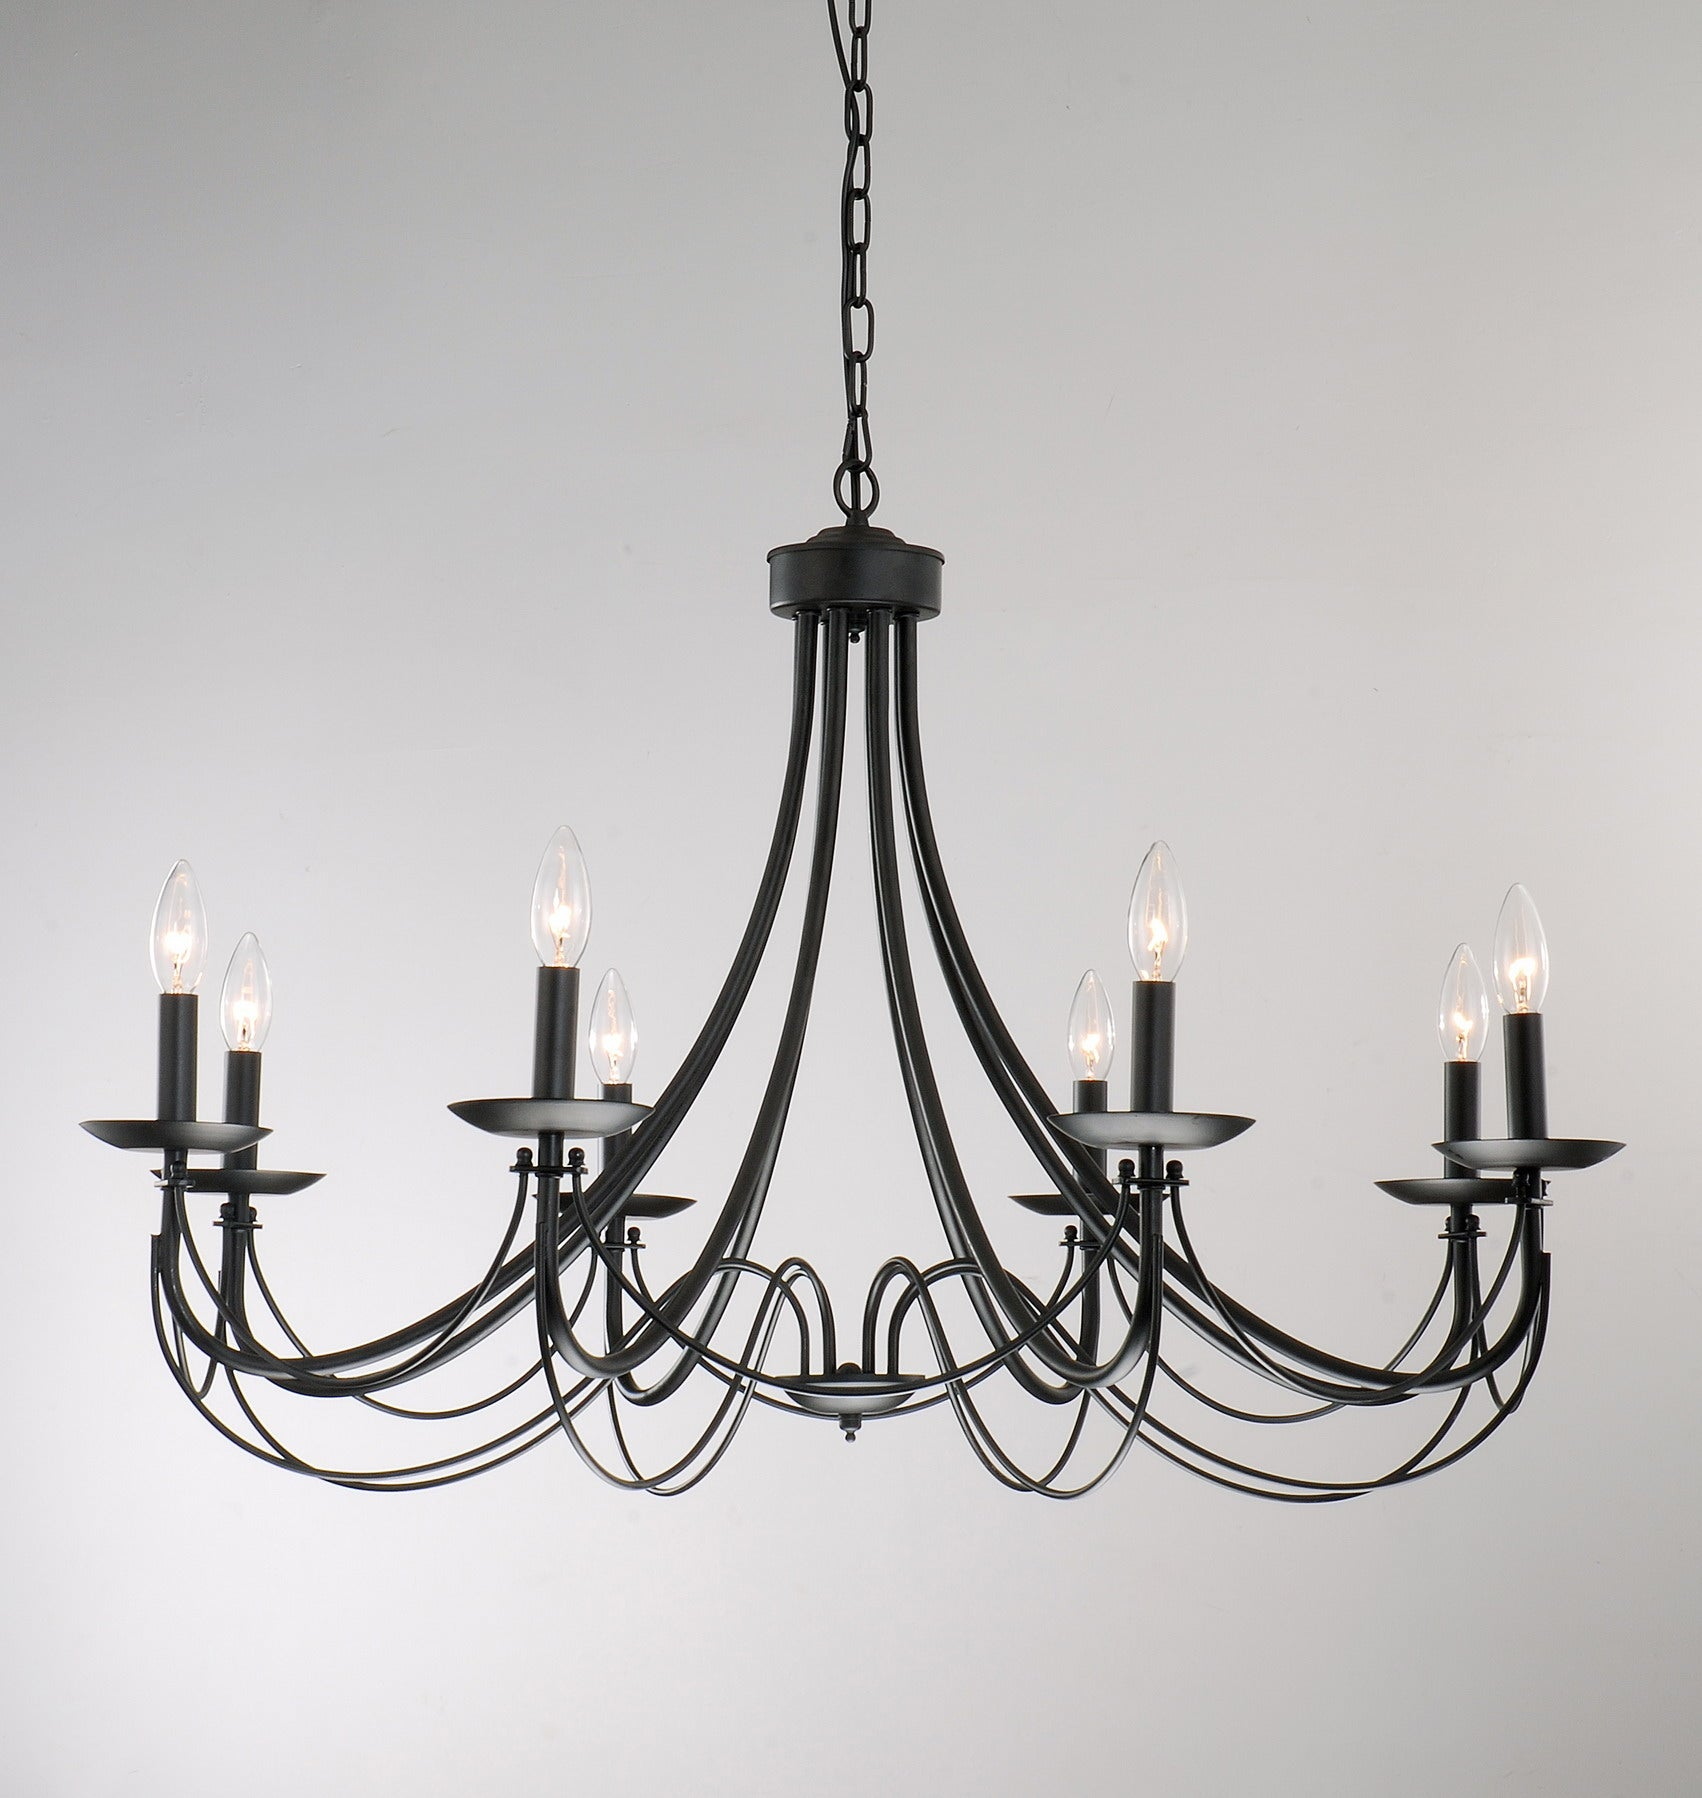 How To Install A Stylish Chandelier Shop The Gray Barn Calloway Hill Iron 8 Light Black On Sale Free Shipping Today 19856337